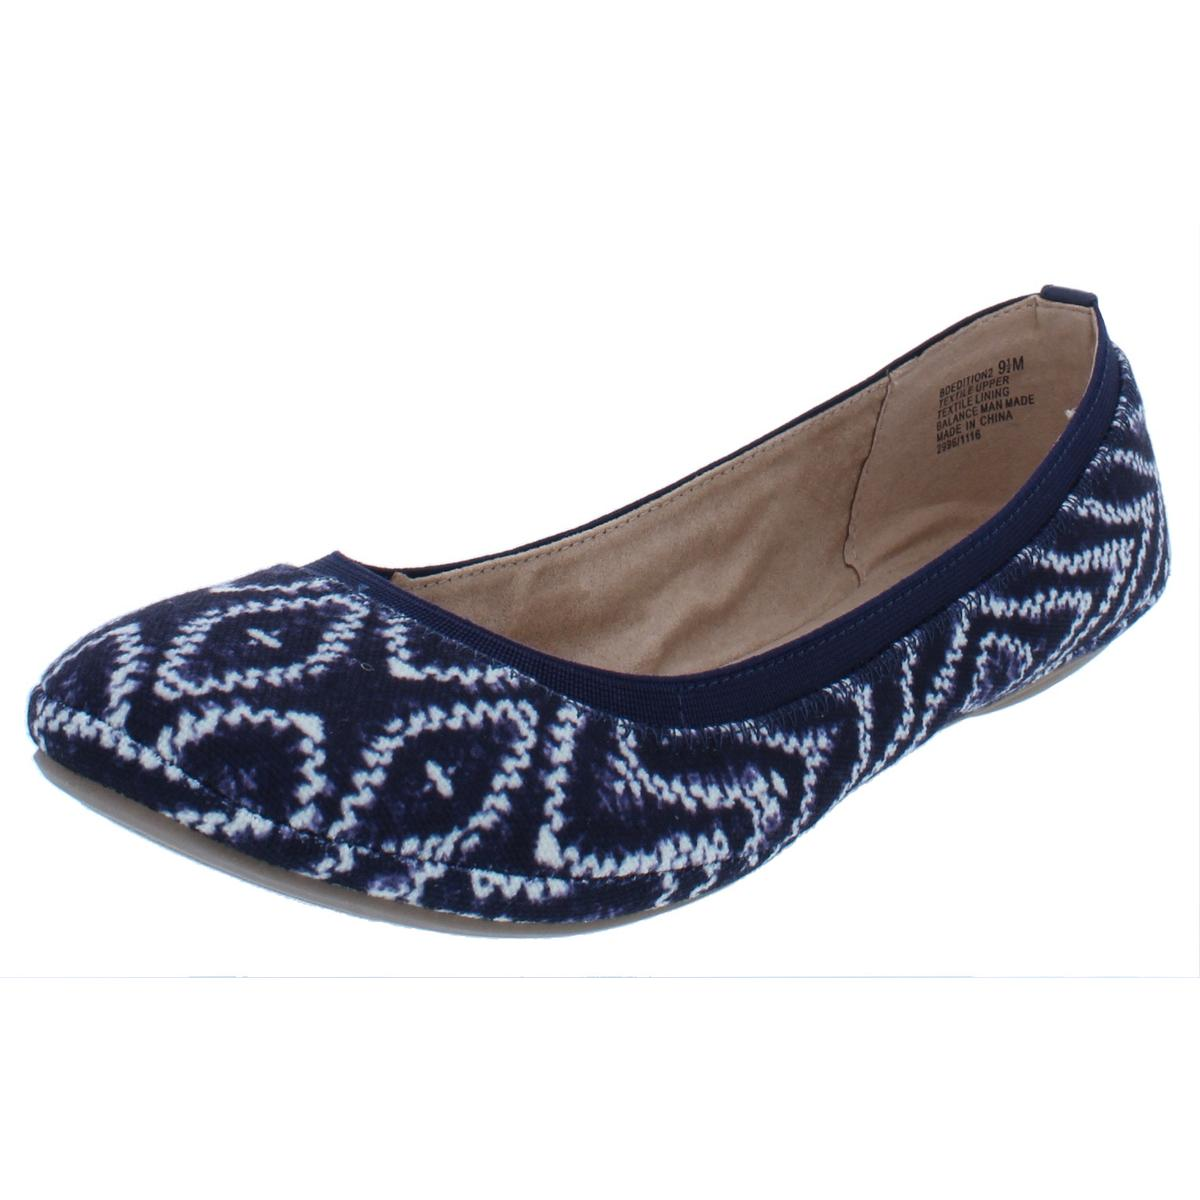 9a6a4aa27c Details about Bandolino Womens Edition Stretch Round Toe Slip On Ballet  Flats Shoes BHFO 7813